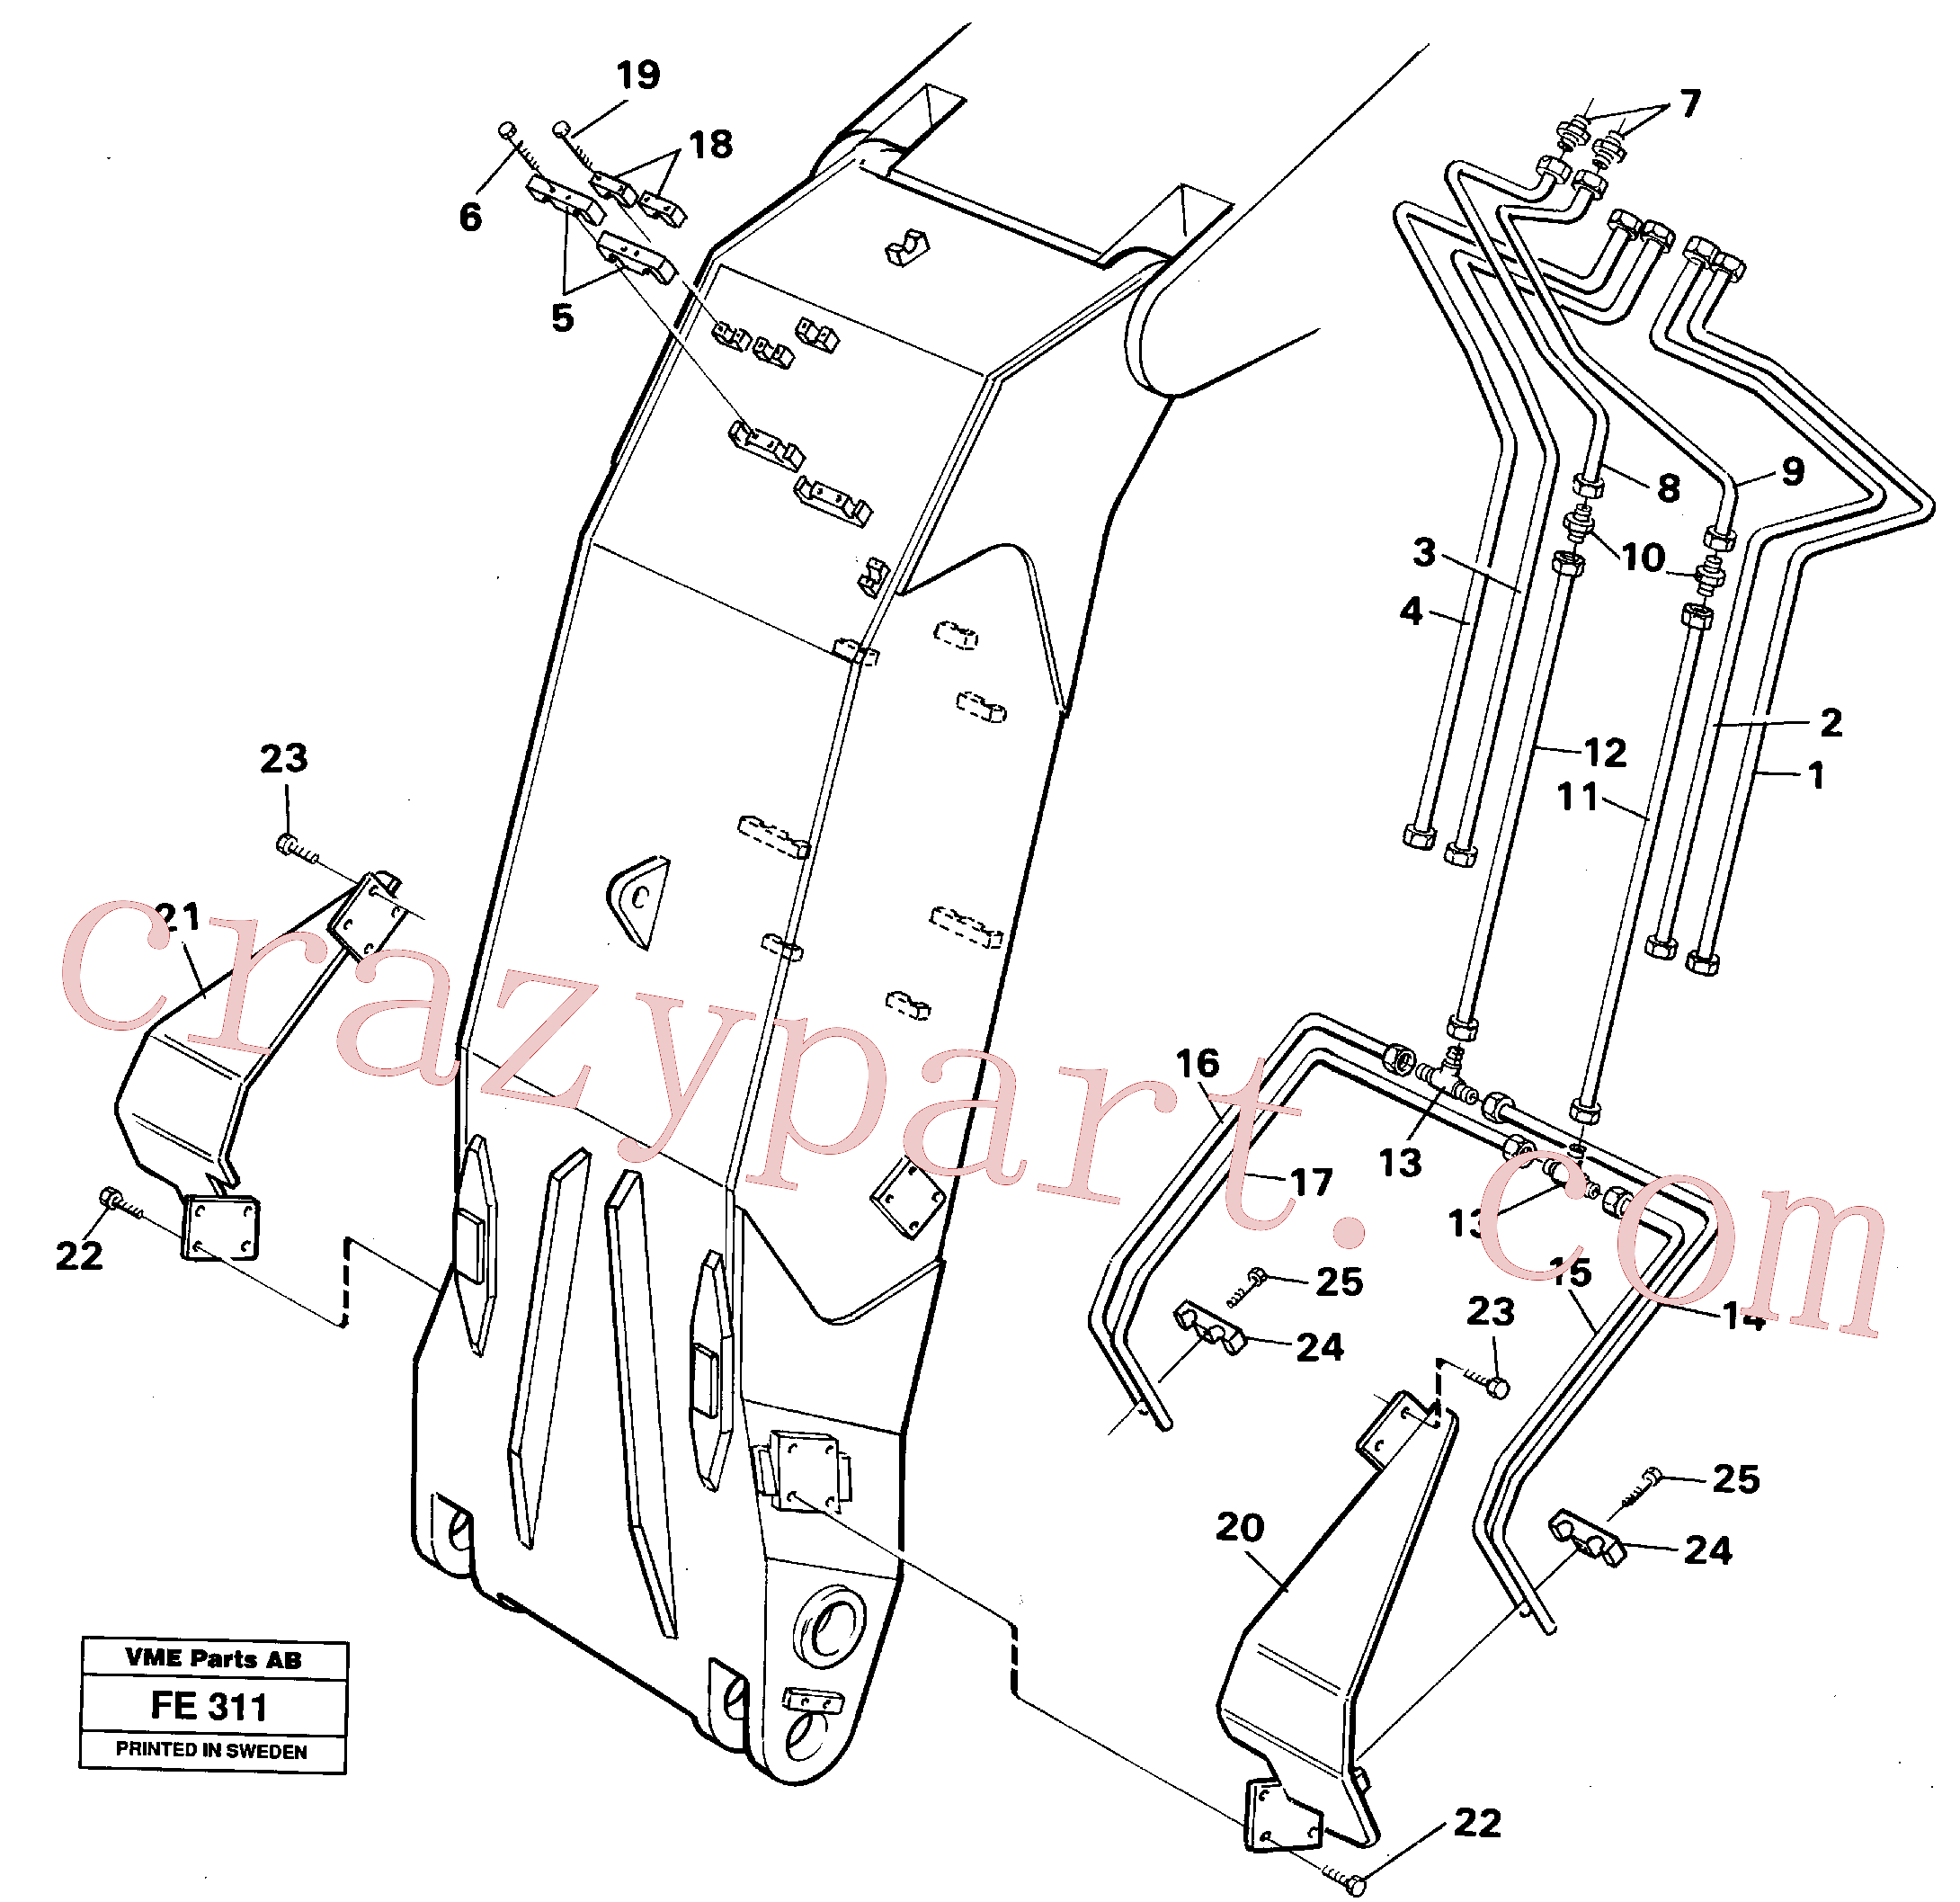 VOE14230322 for Volvo Hydraulic system, dipper arm, face shovel equipment(FE311 assembly)